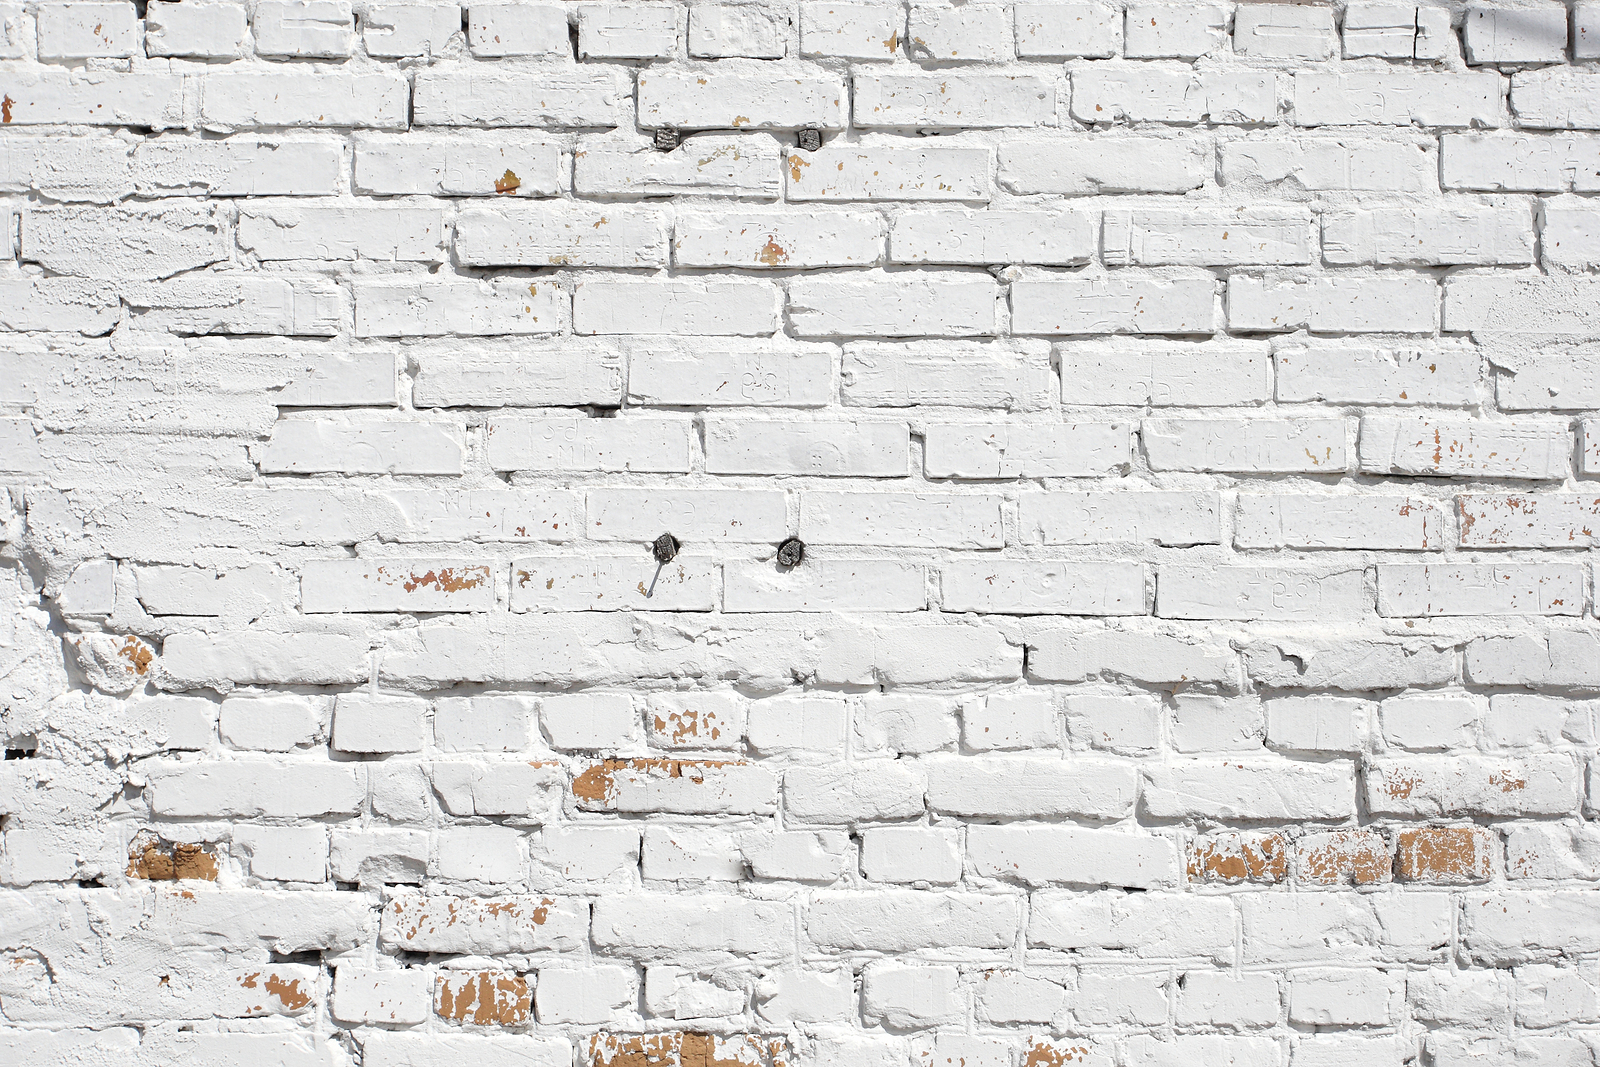 How To Remove Paint From Brick Surfaces In 6 Easy Steps